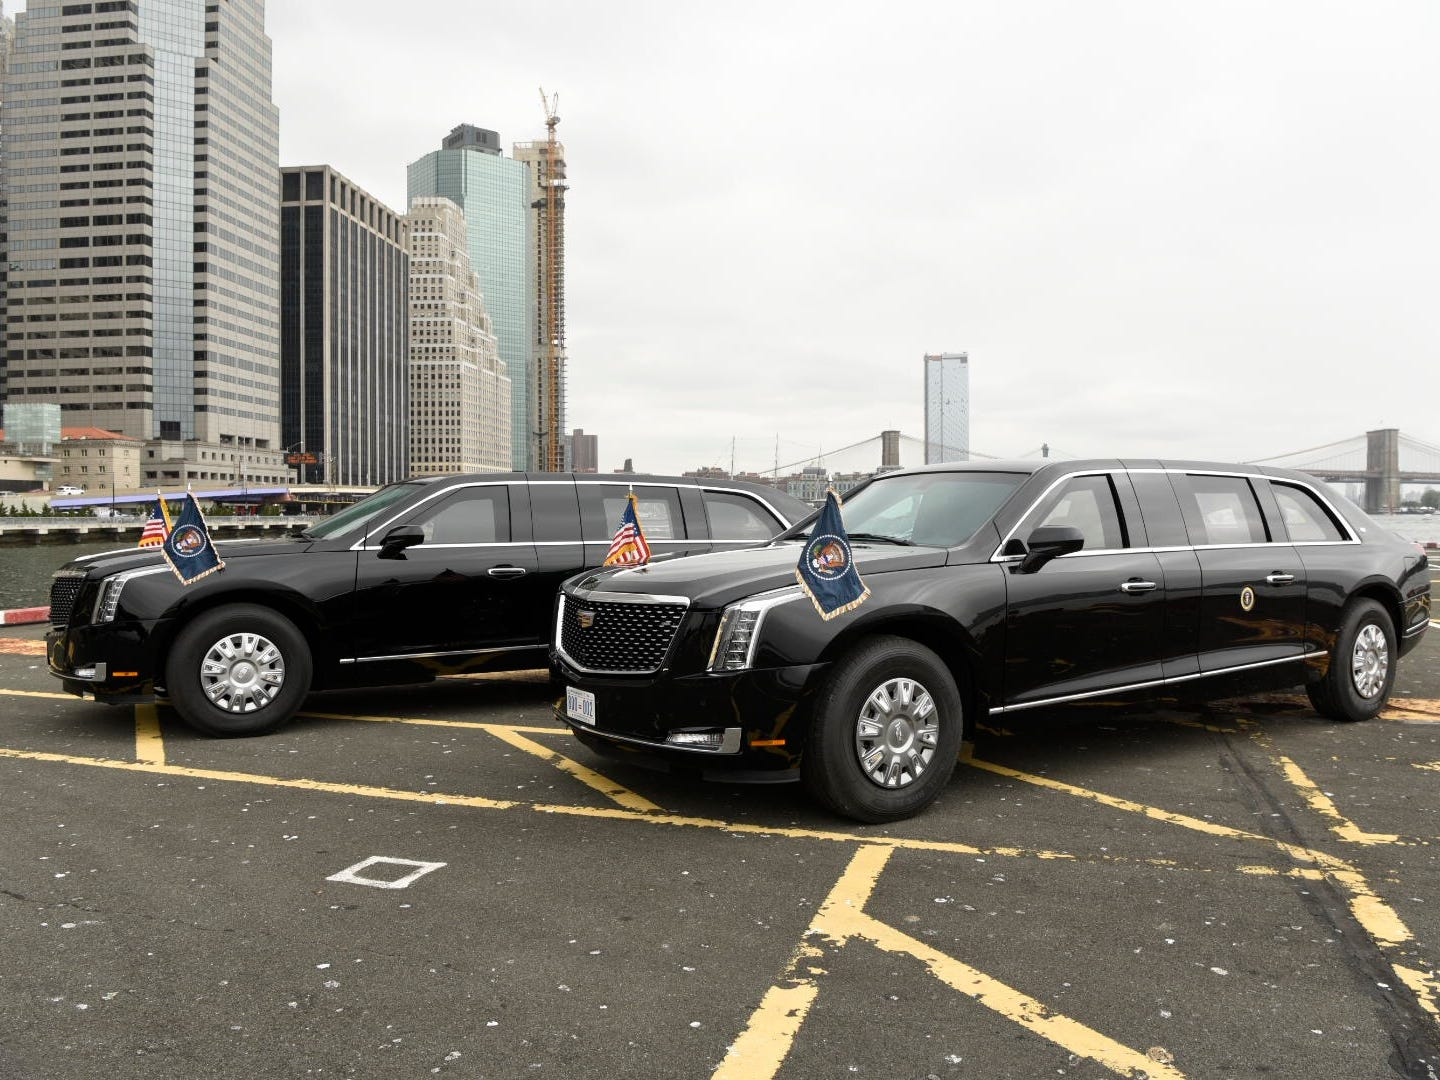 The new 2018 presidential limo made by Cadillac debuts in New York, NY at the 73rd United Nations General Assembly.